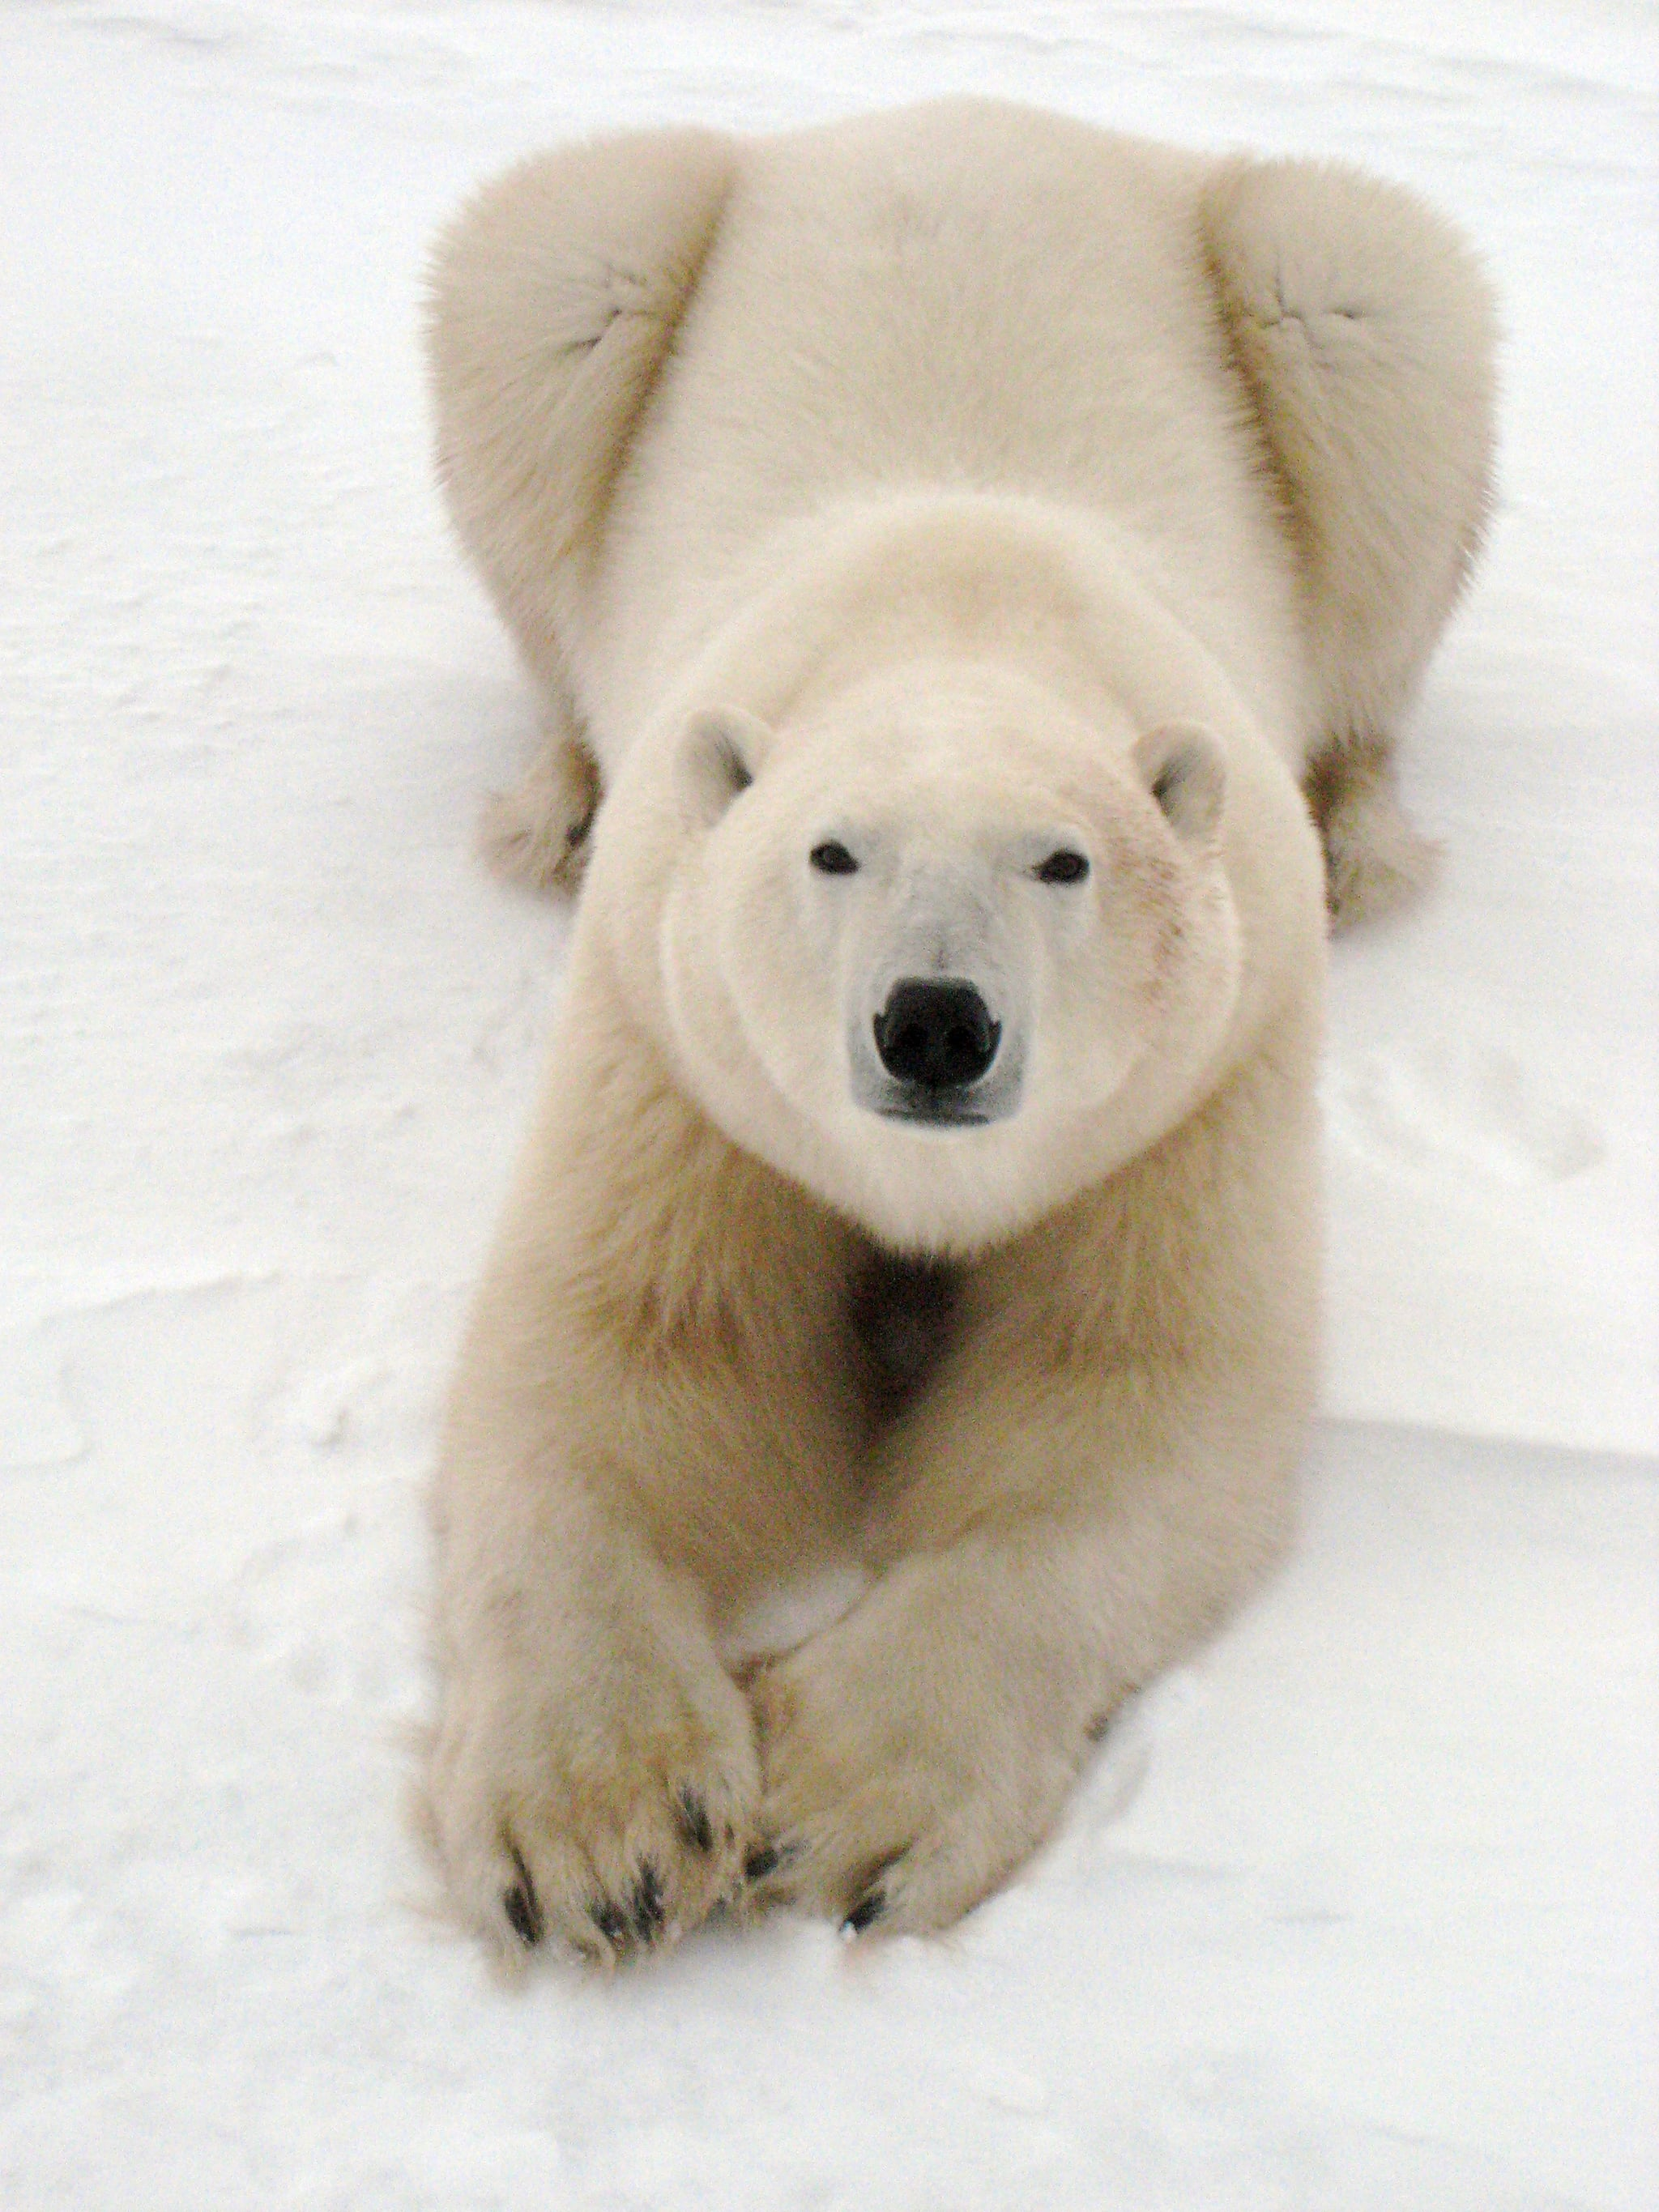 Adult polar bears can weigh between 750 and 1,500 pounds, which means they might not be the best for a cuddle. Photo courtesy of Warner Home Entertainment